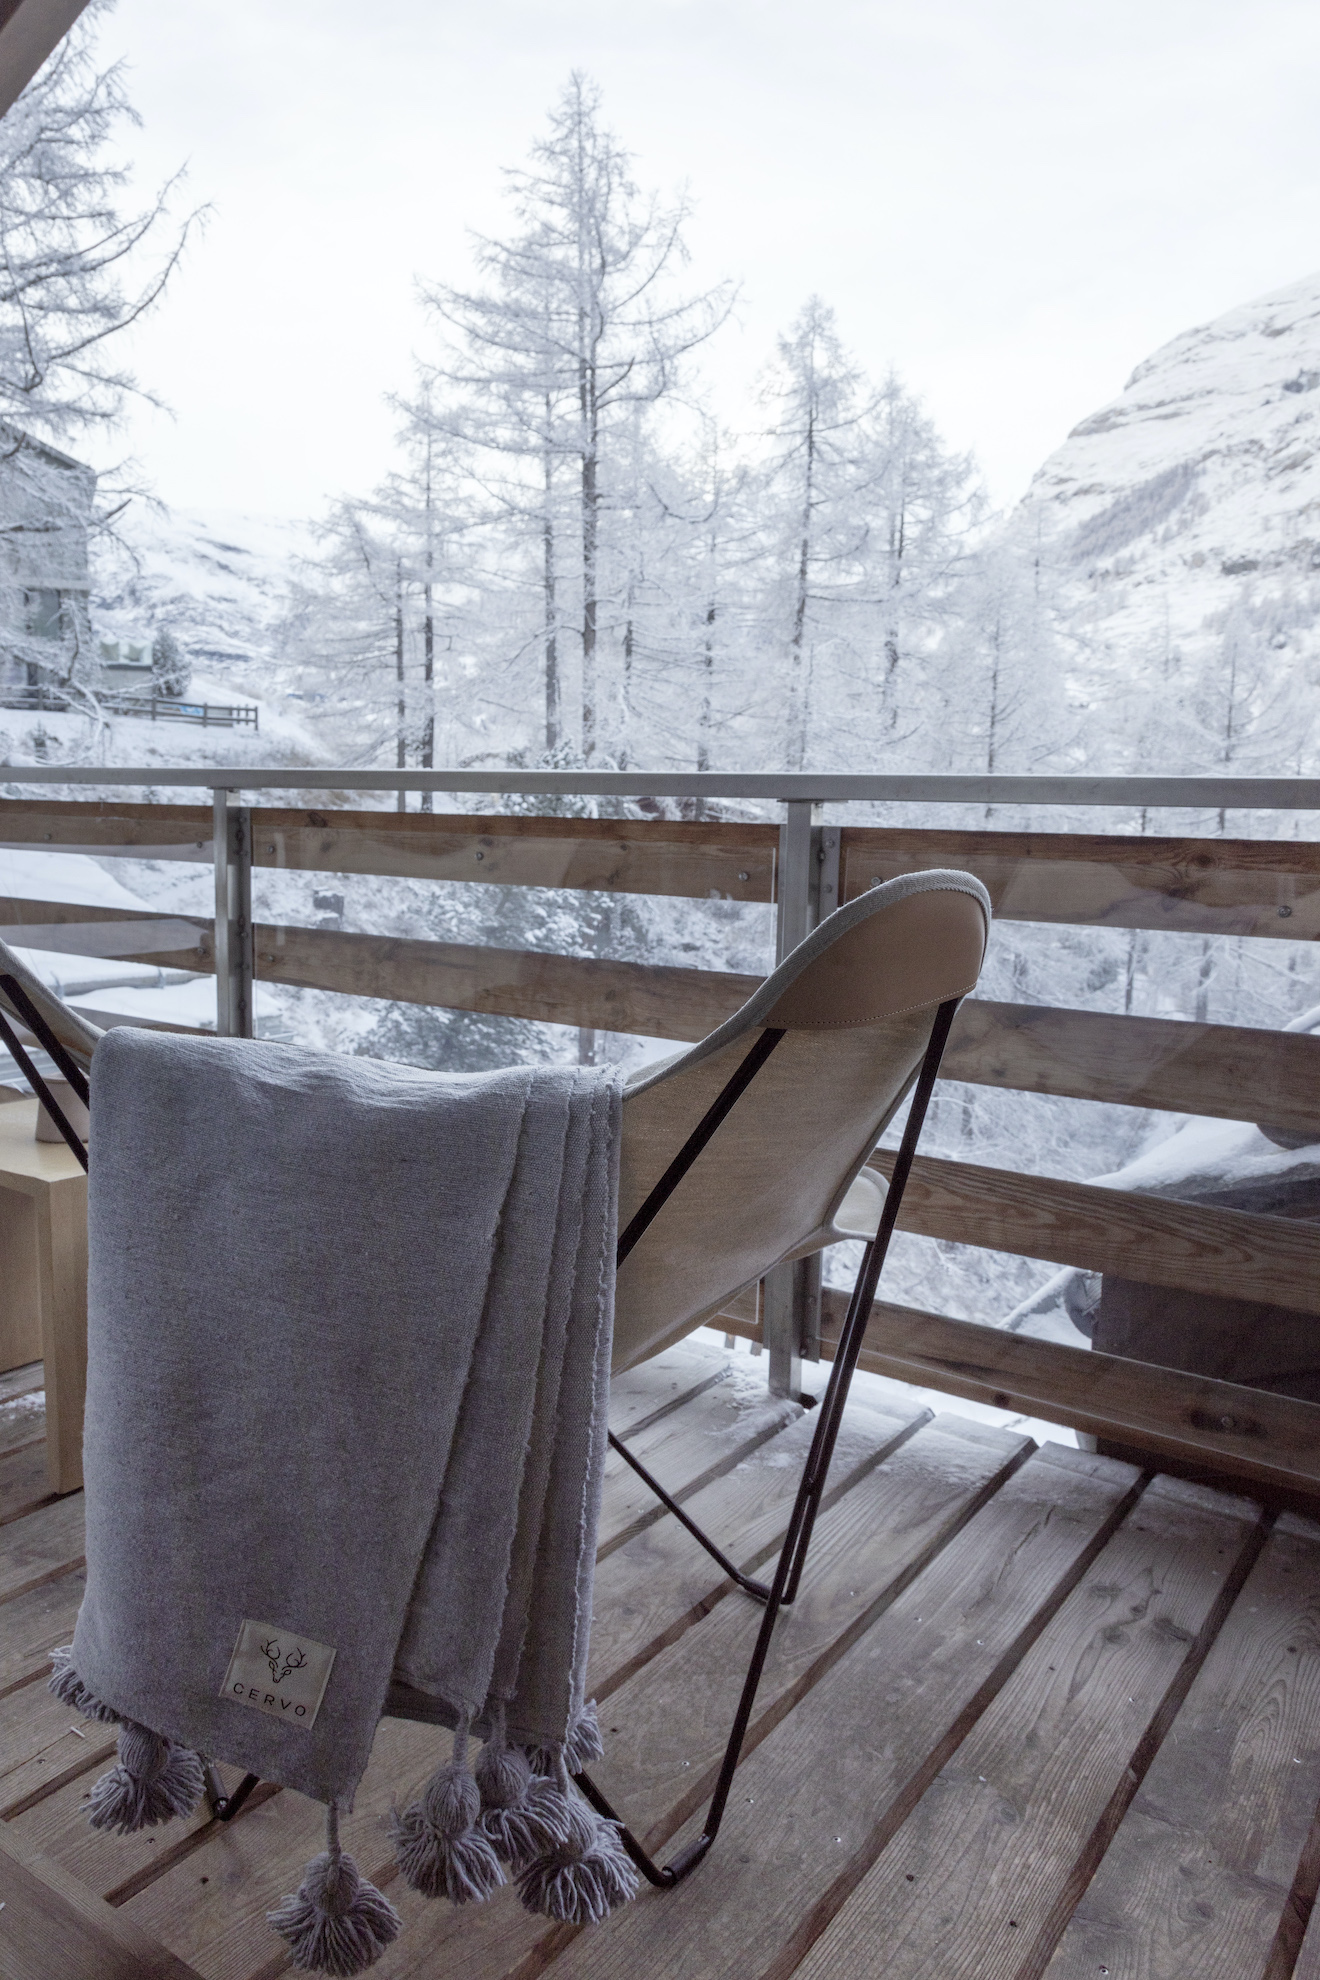 Balcony in winter with chair and blanket